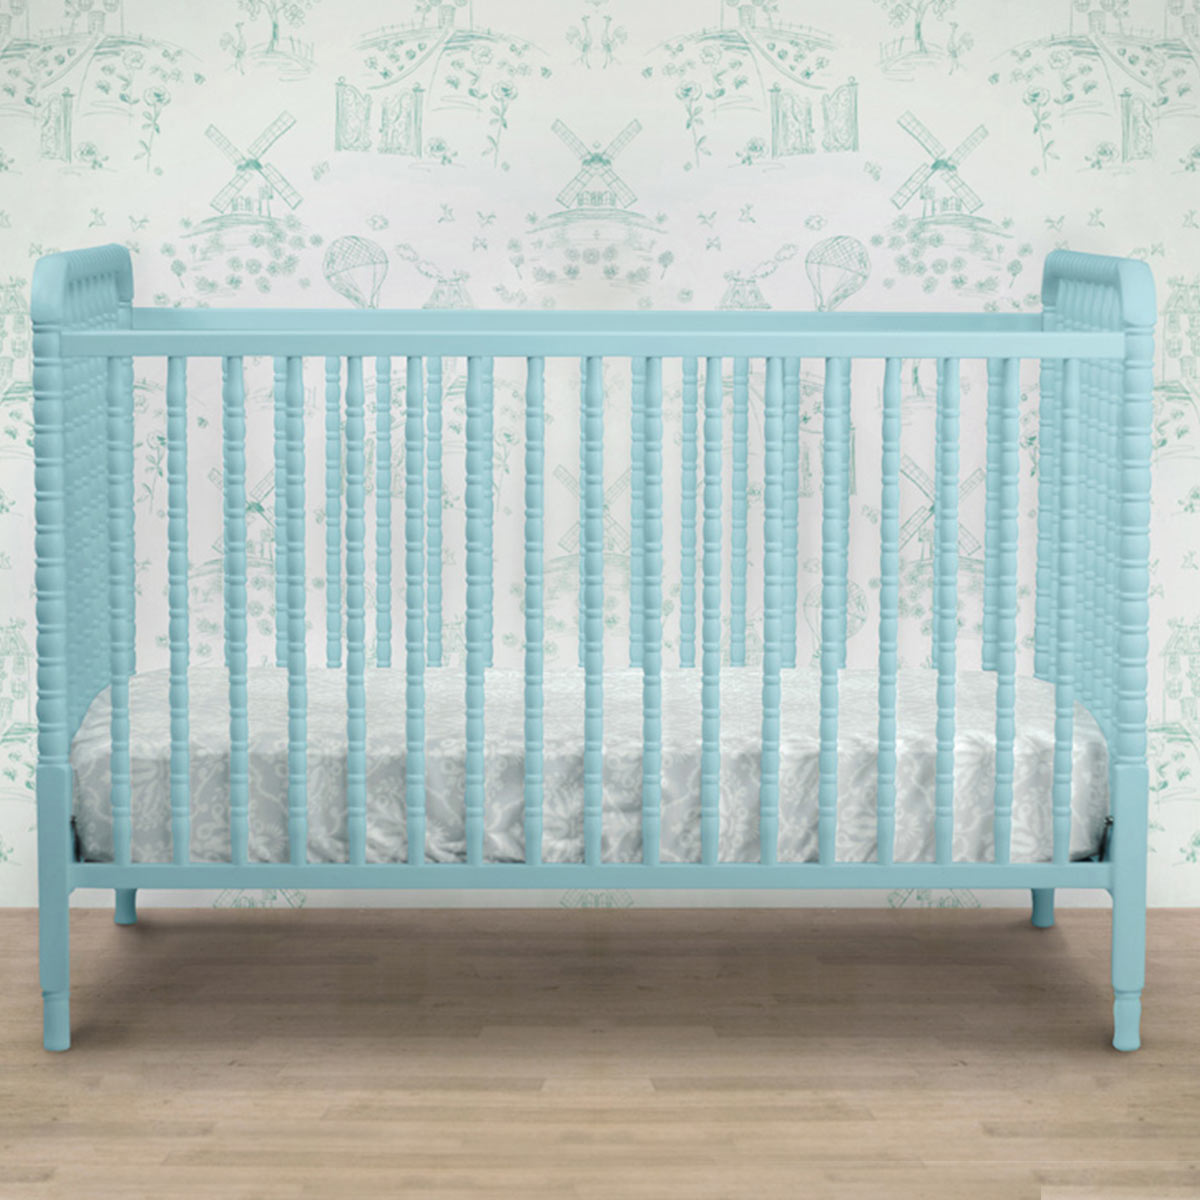 Davinci Jenny Lind 3 In 1 Convertible Crib With Toddler Bed Conversion Kit In Lagoon Free Shipping